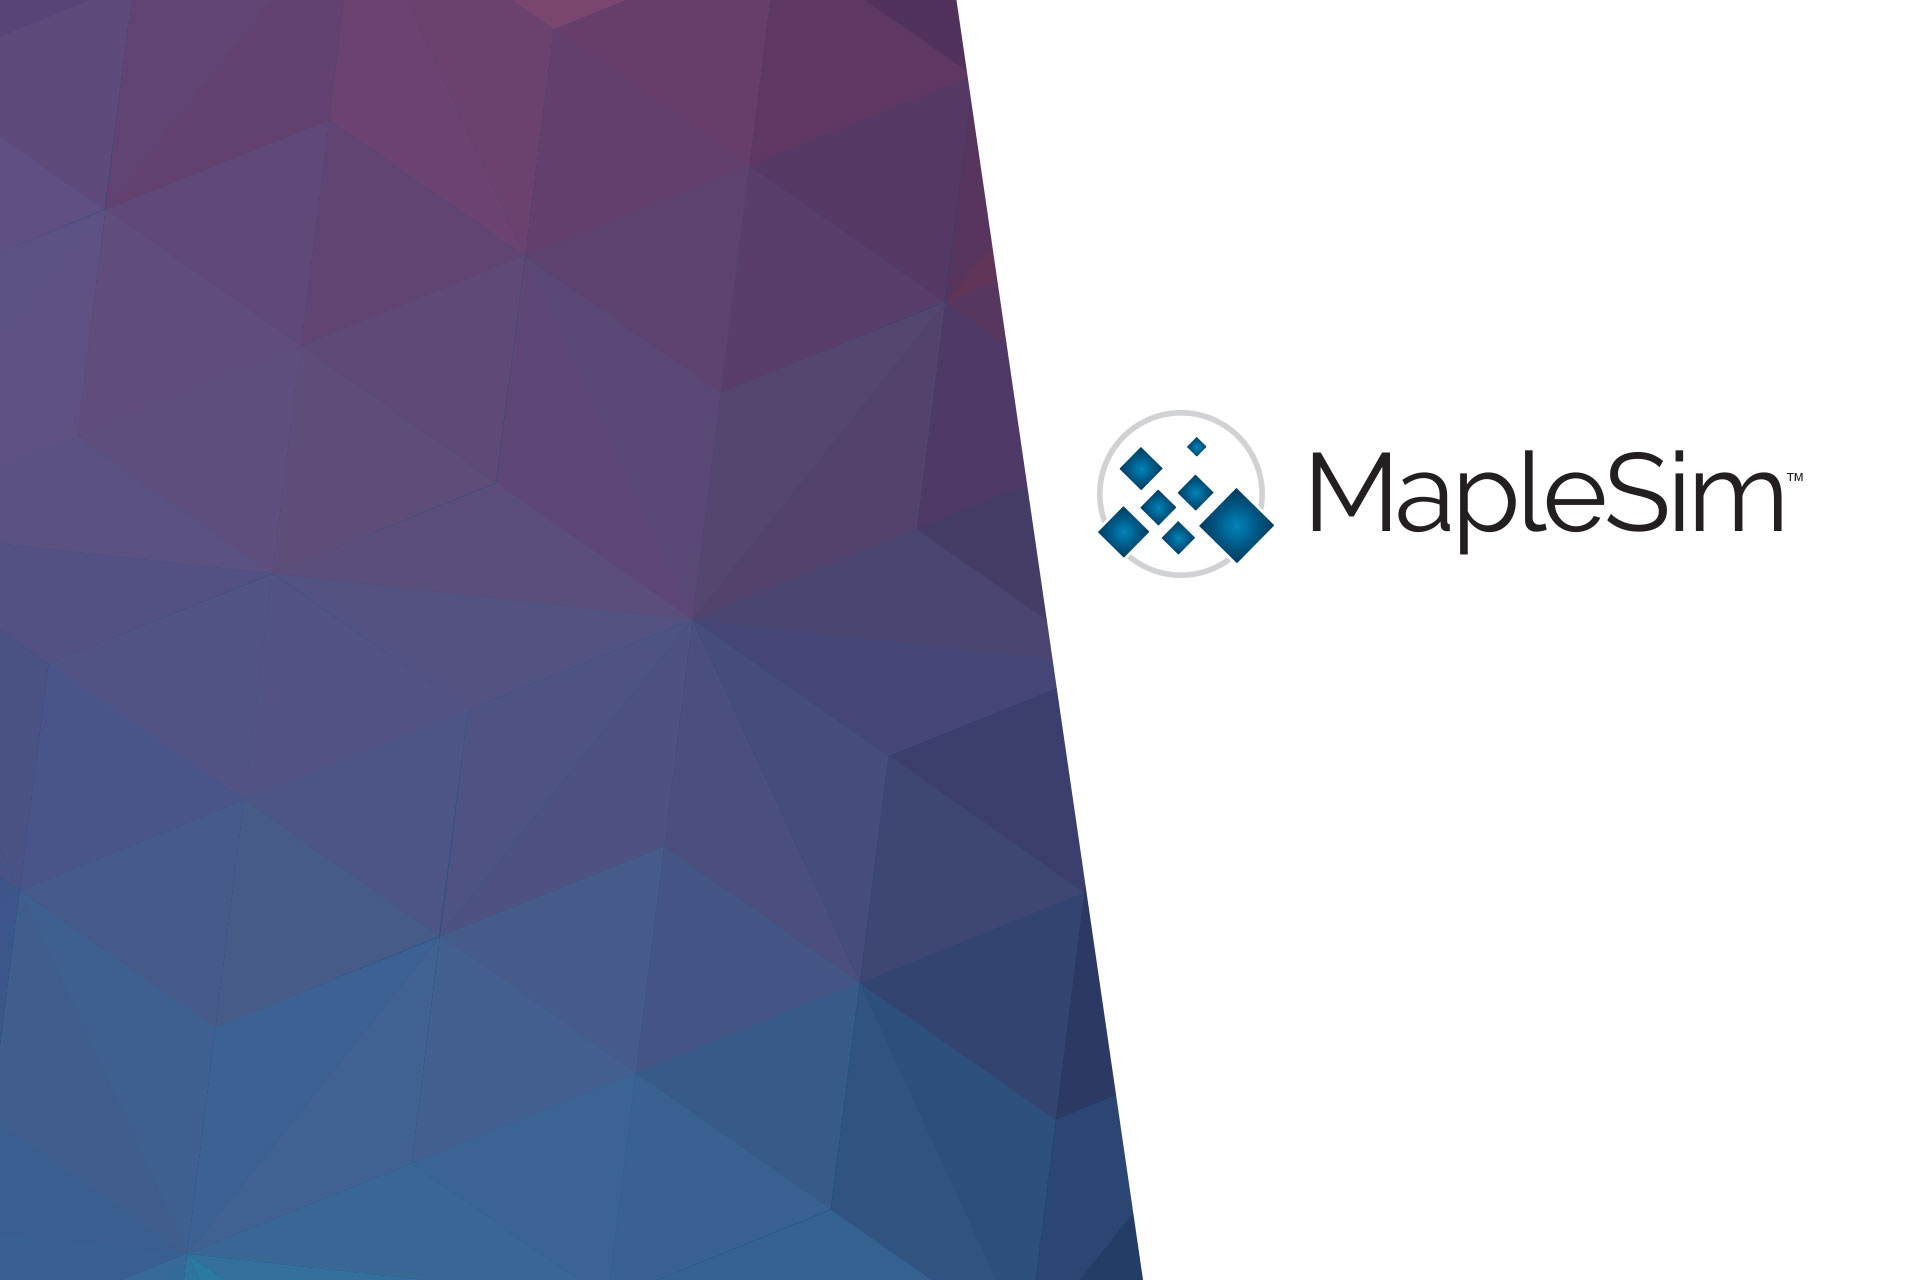 MapleSim from Maplesoft